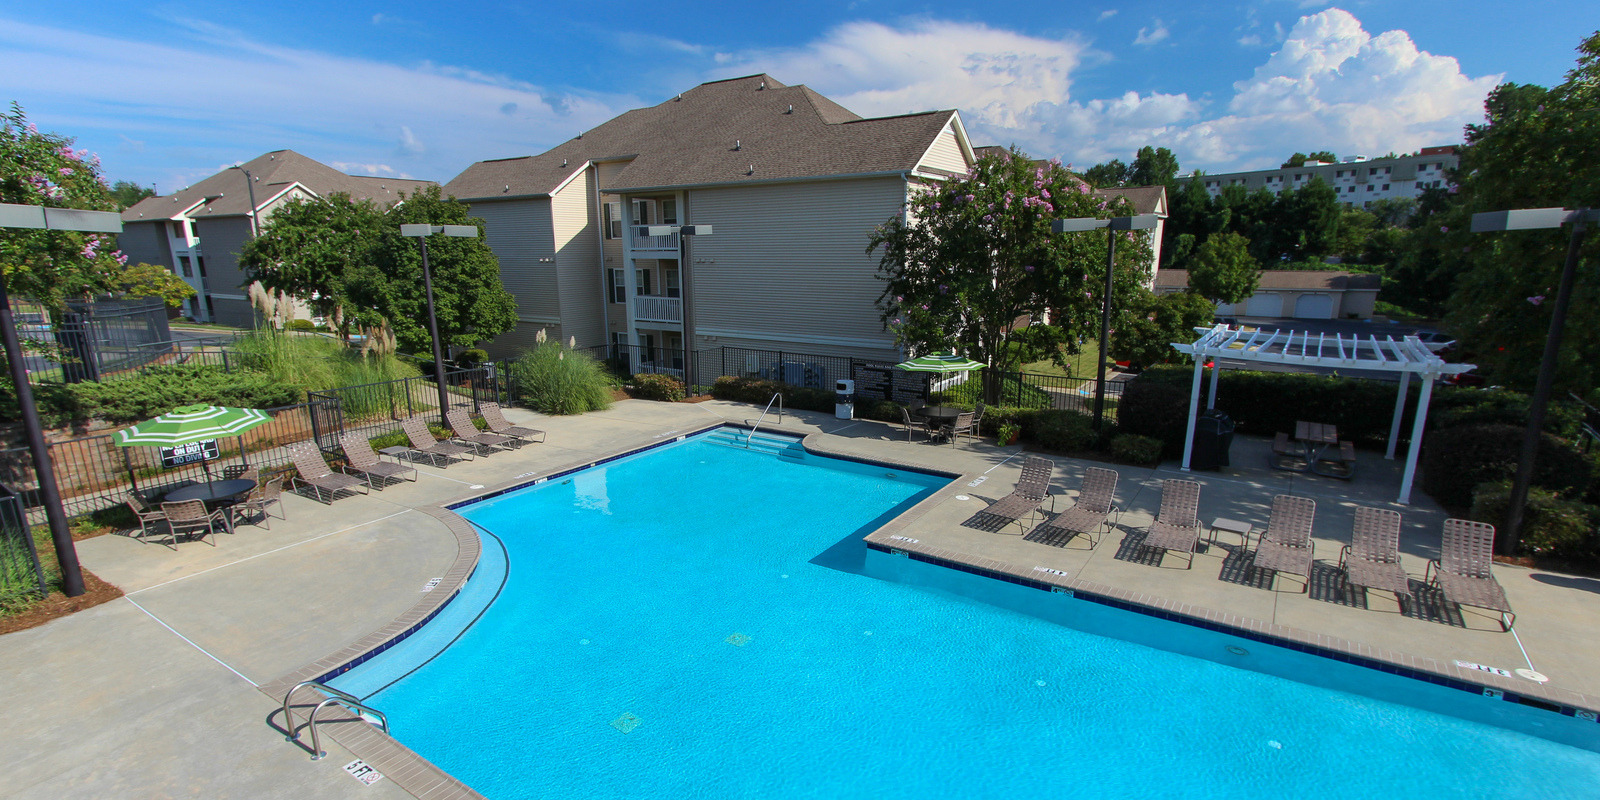 athens apartment beechwood pines in athens ga 30606